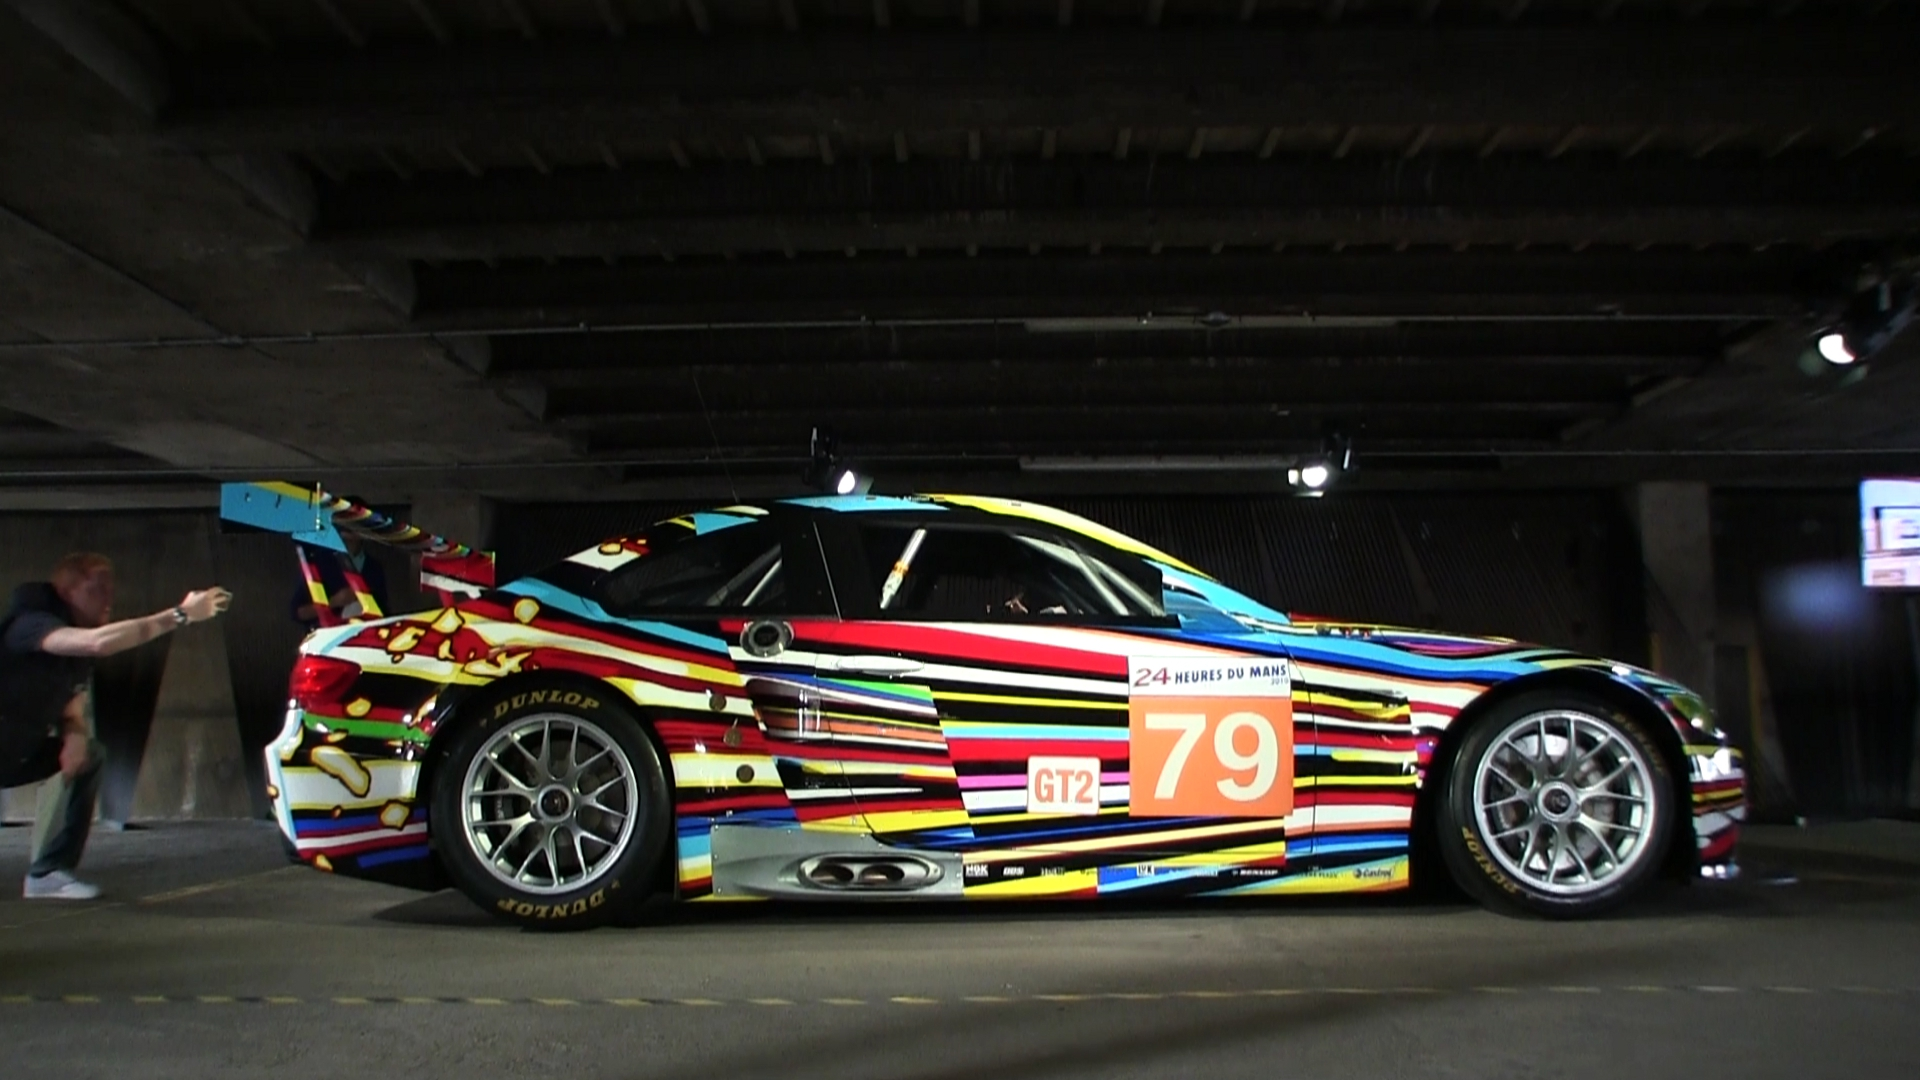 Art Drive Cool BMW Art Car Collection Decorated By Famous Artists - Cool car art